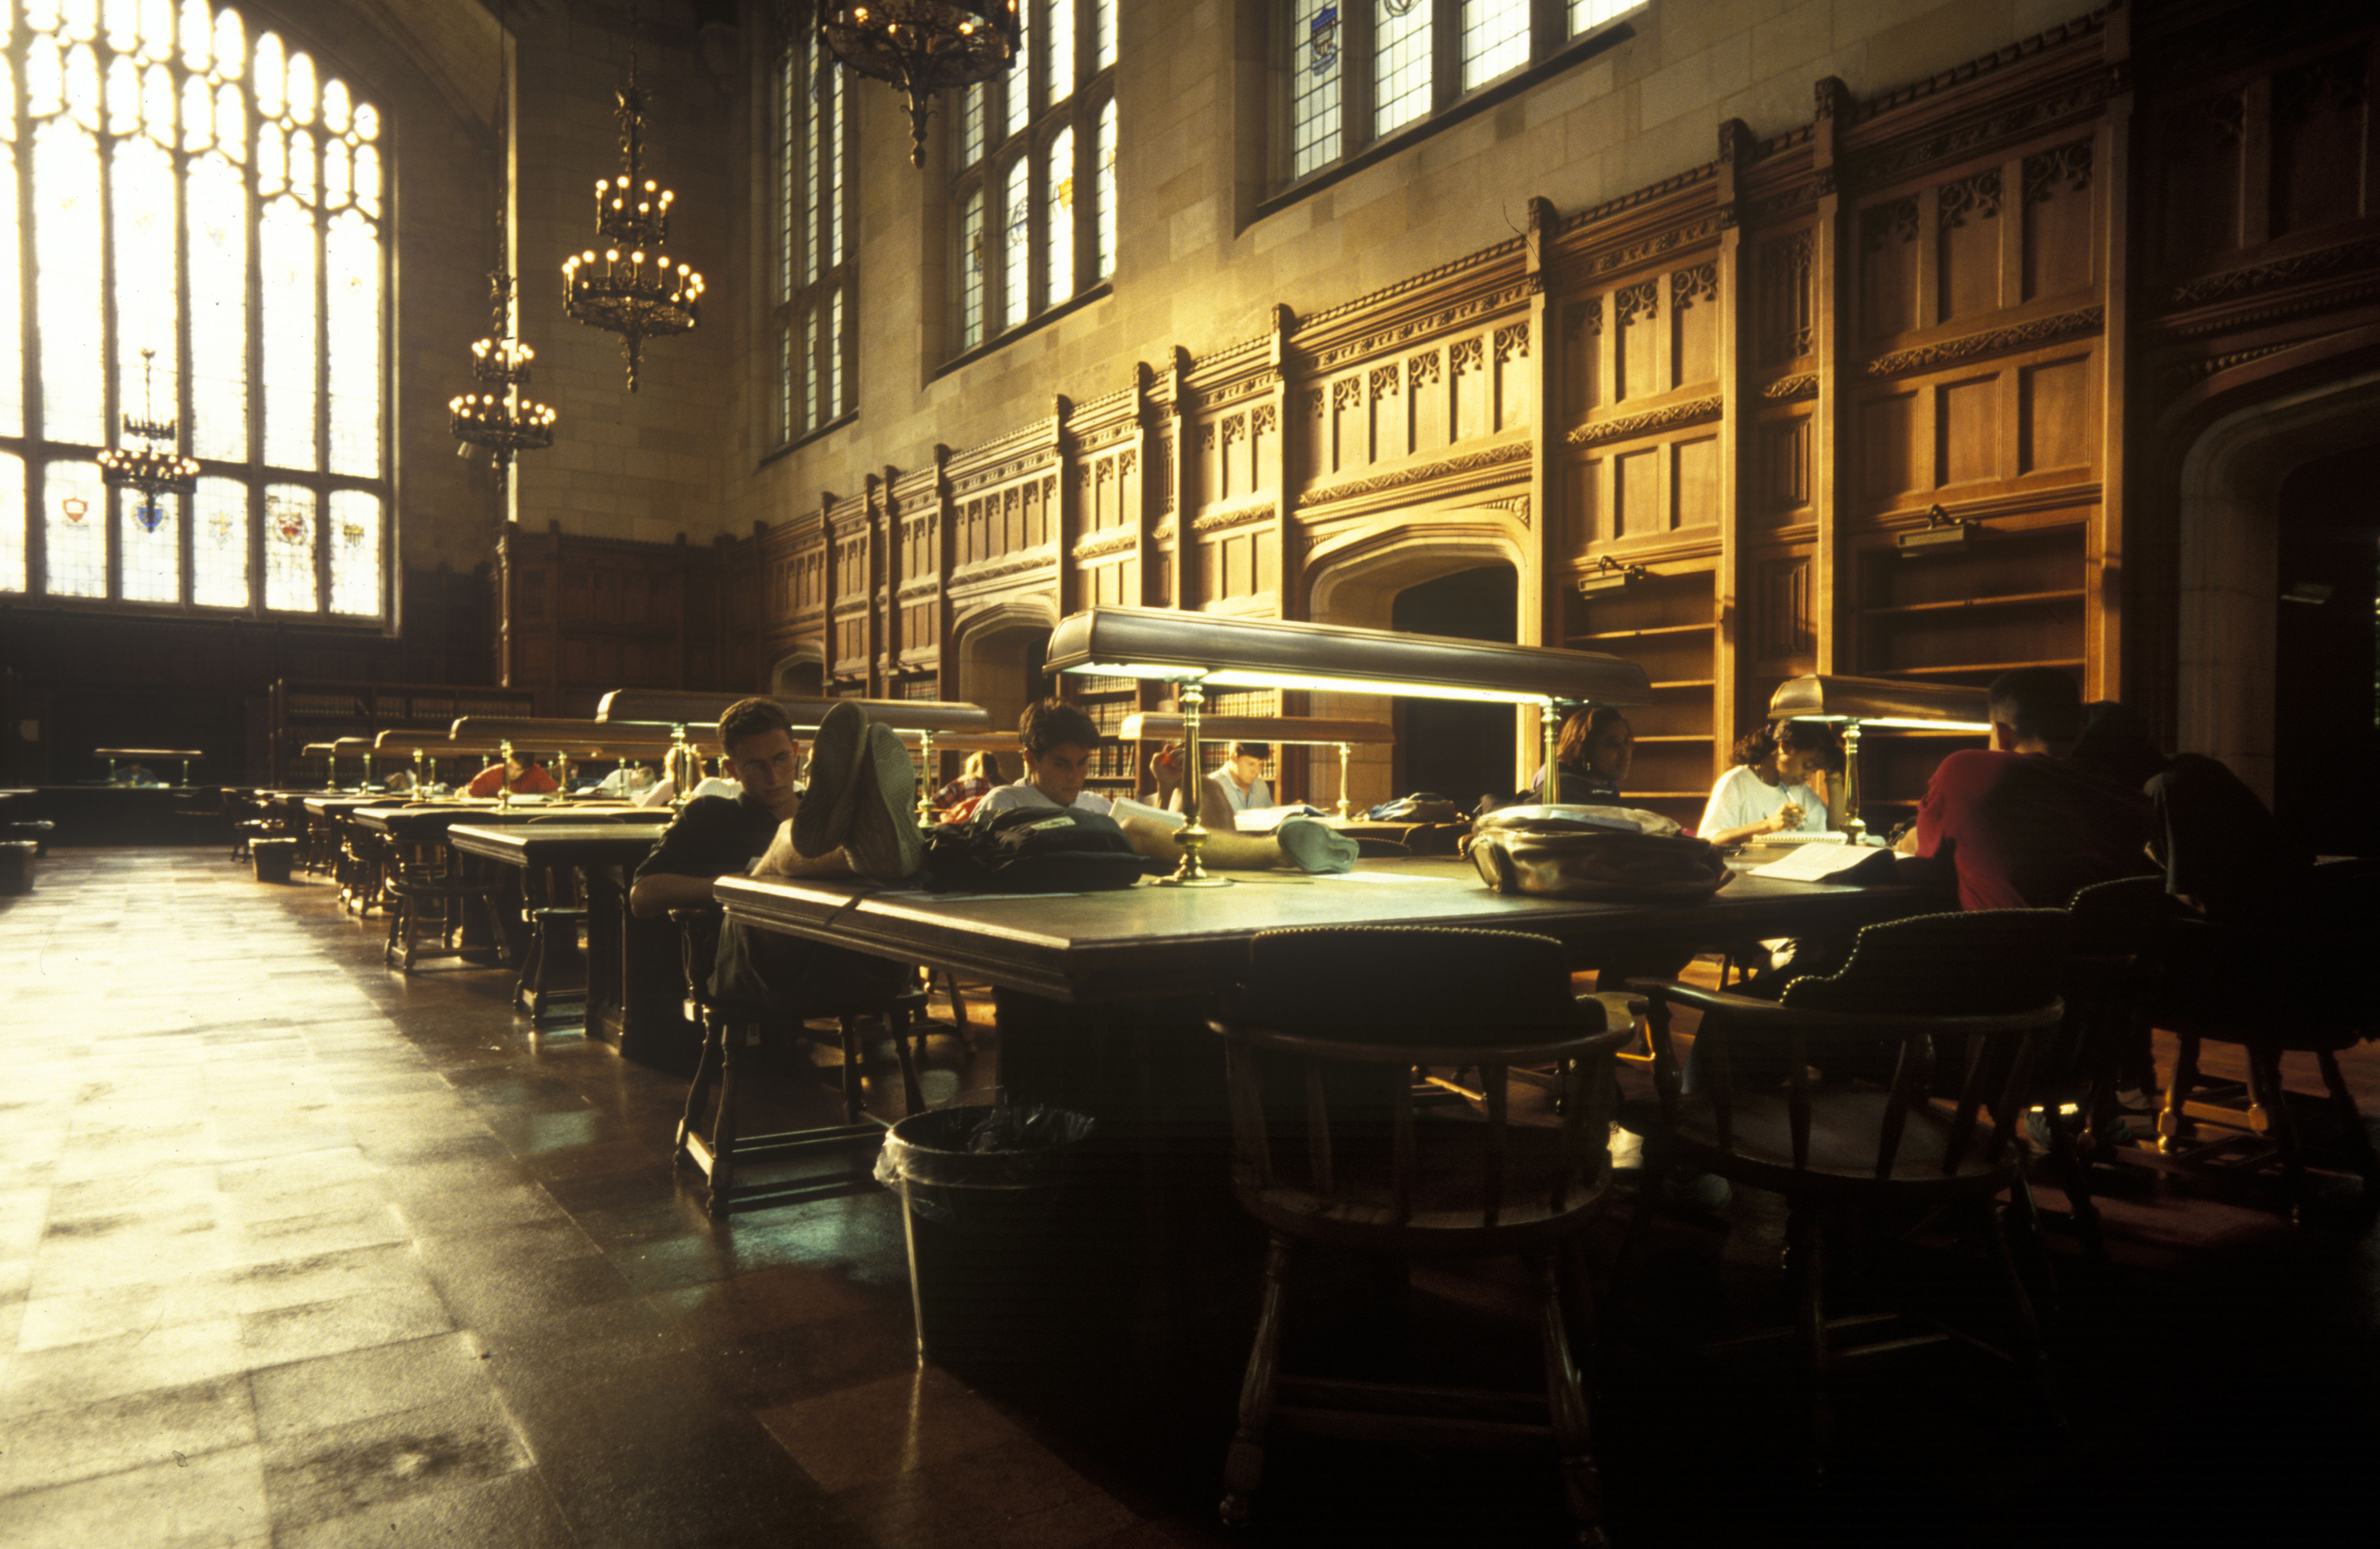 Law School Library, University of Michigan, c.1990s image